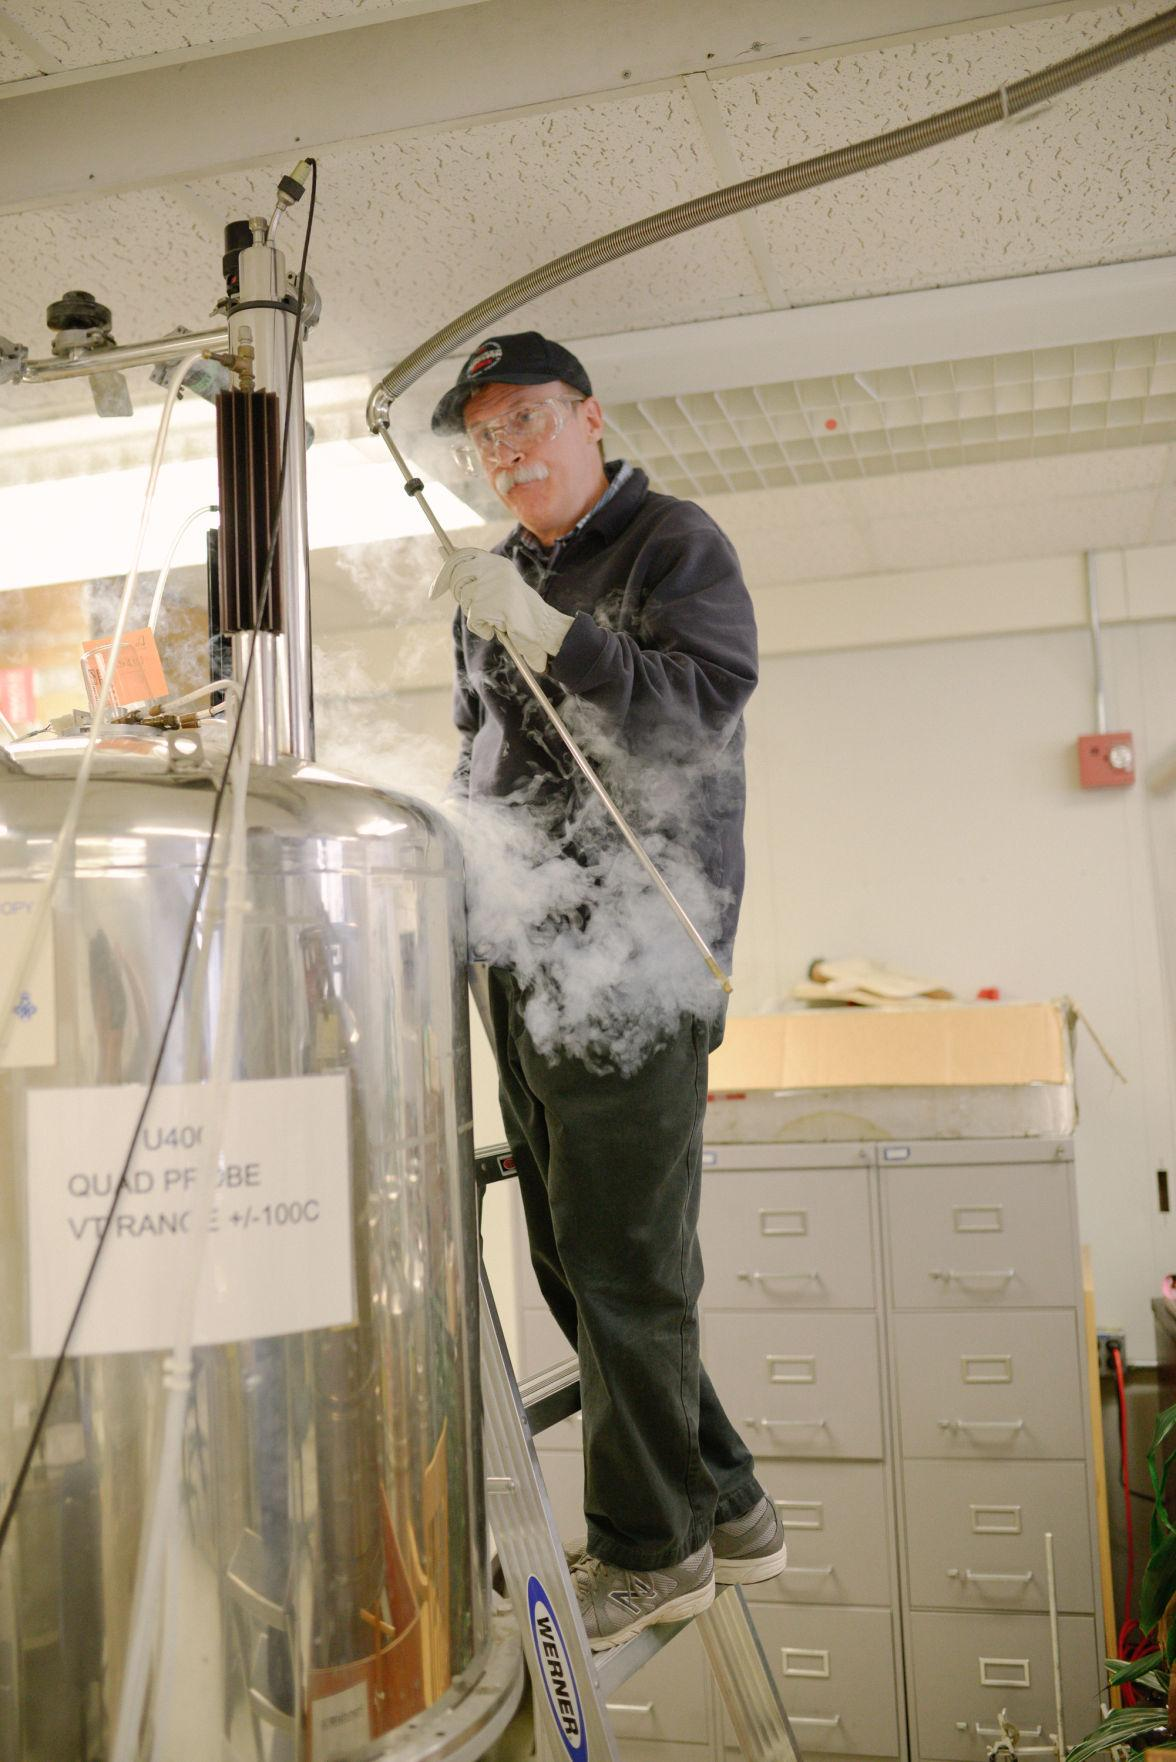 Dean Olson, Director of the Nuclear Magnetic Resonance (NMR) Lab, prepares to insert a liquid helium filler into a superconducting magnet apparatus at the Chemical and Life Sciences Laboratory A on February 10.